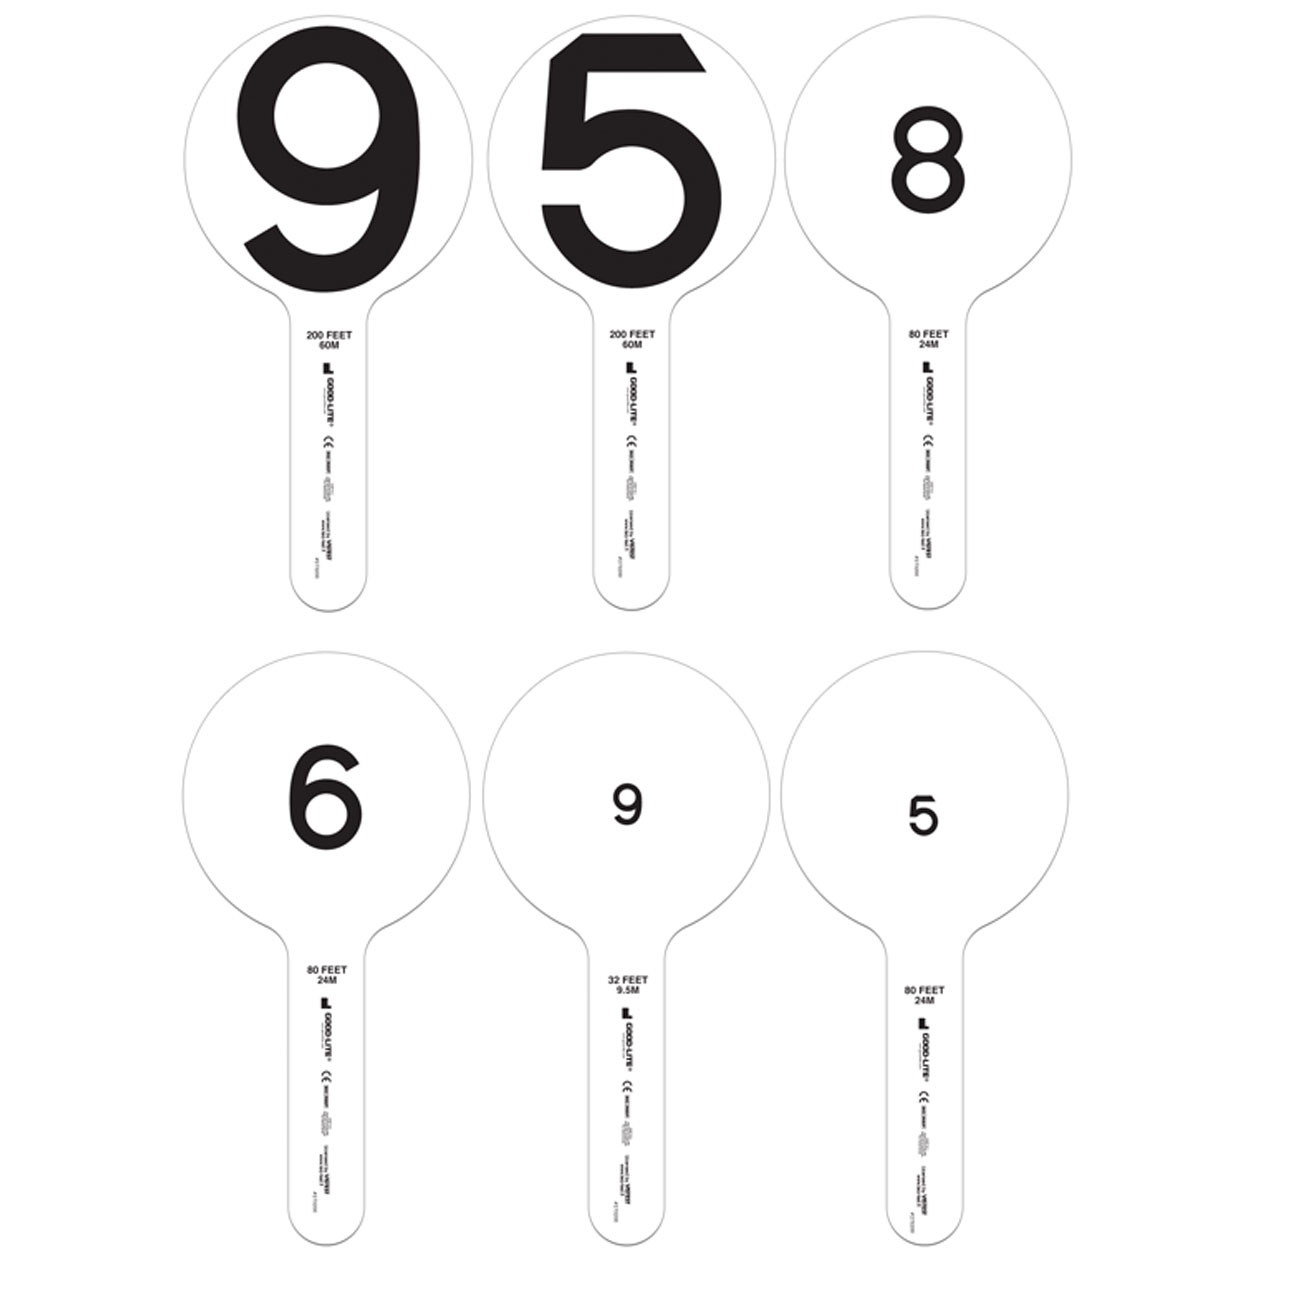 Lea Numbers Vision Rehabilitation Training Paddles